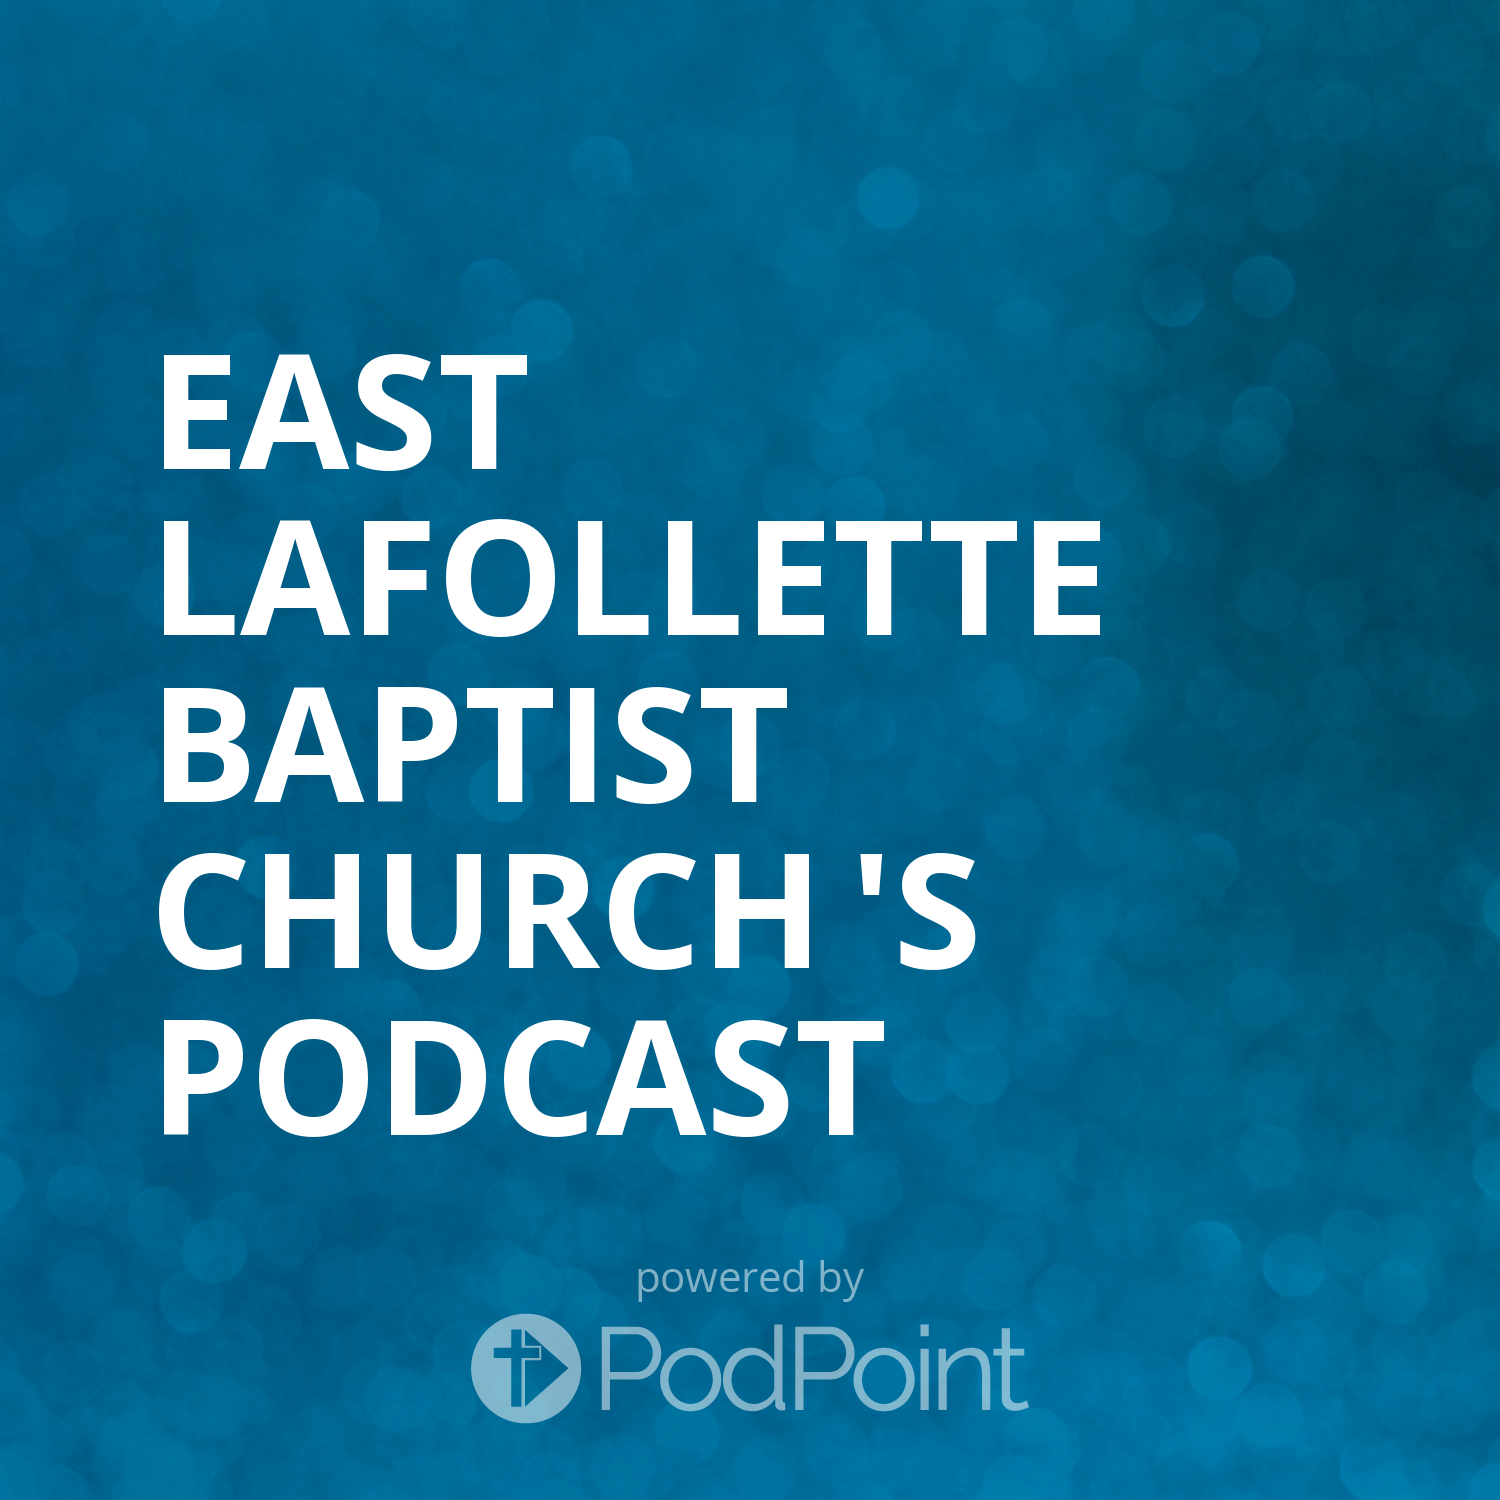 East LaFollette Baptist Church 's Podcast